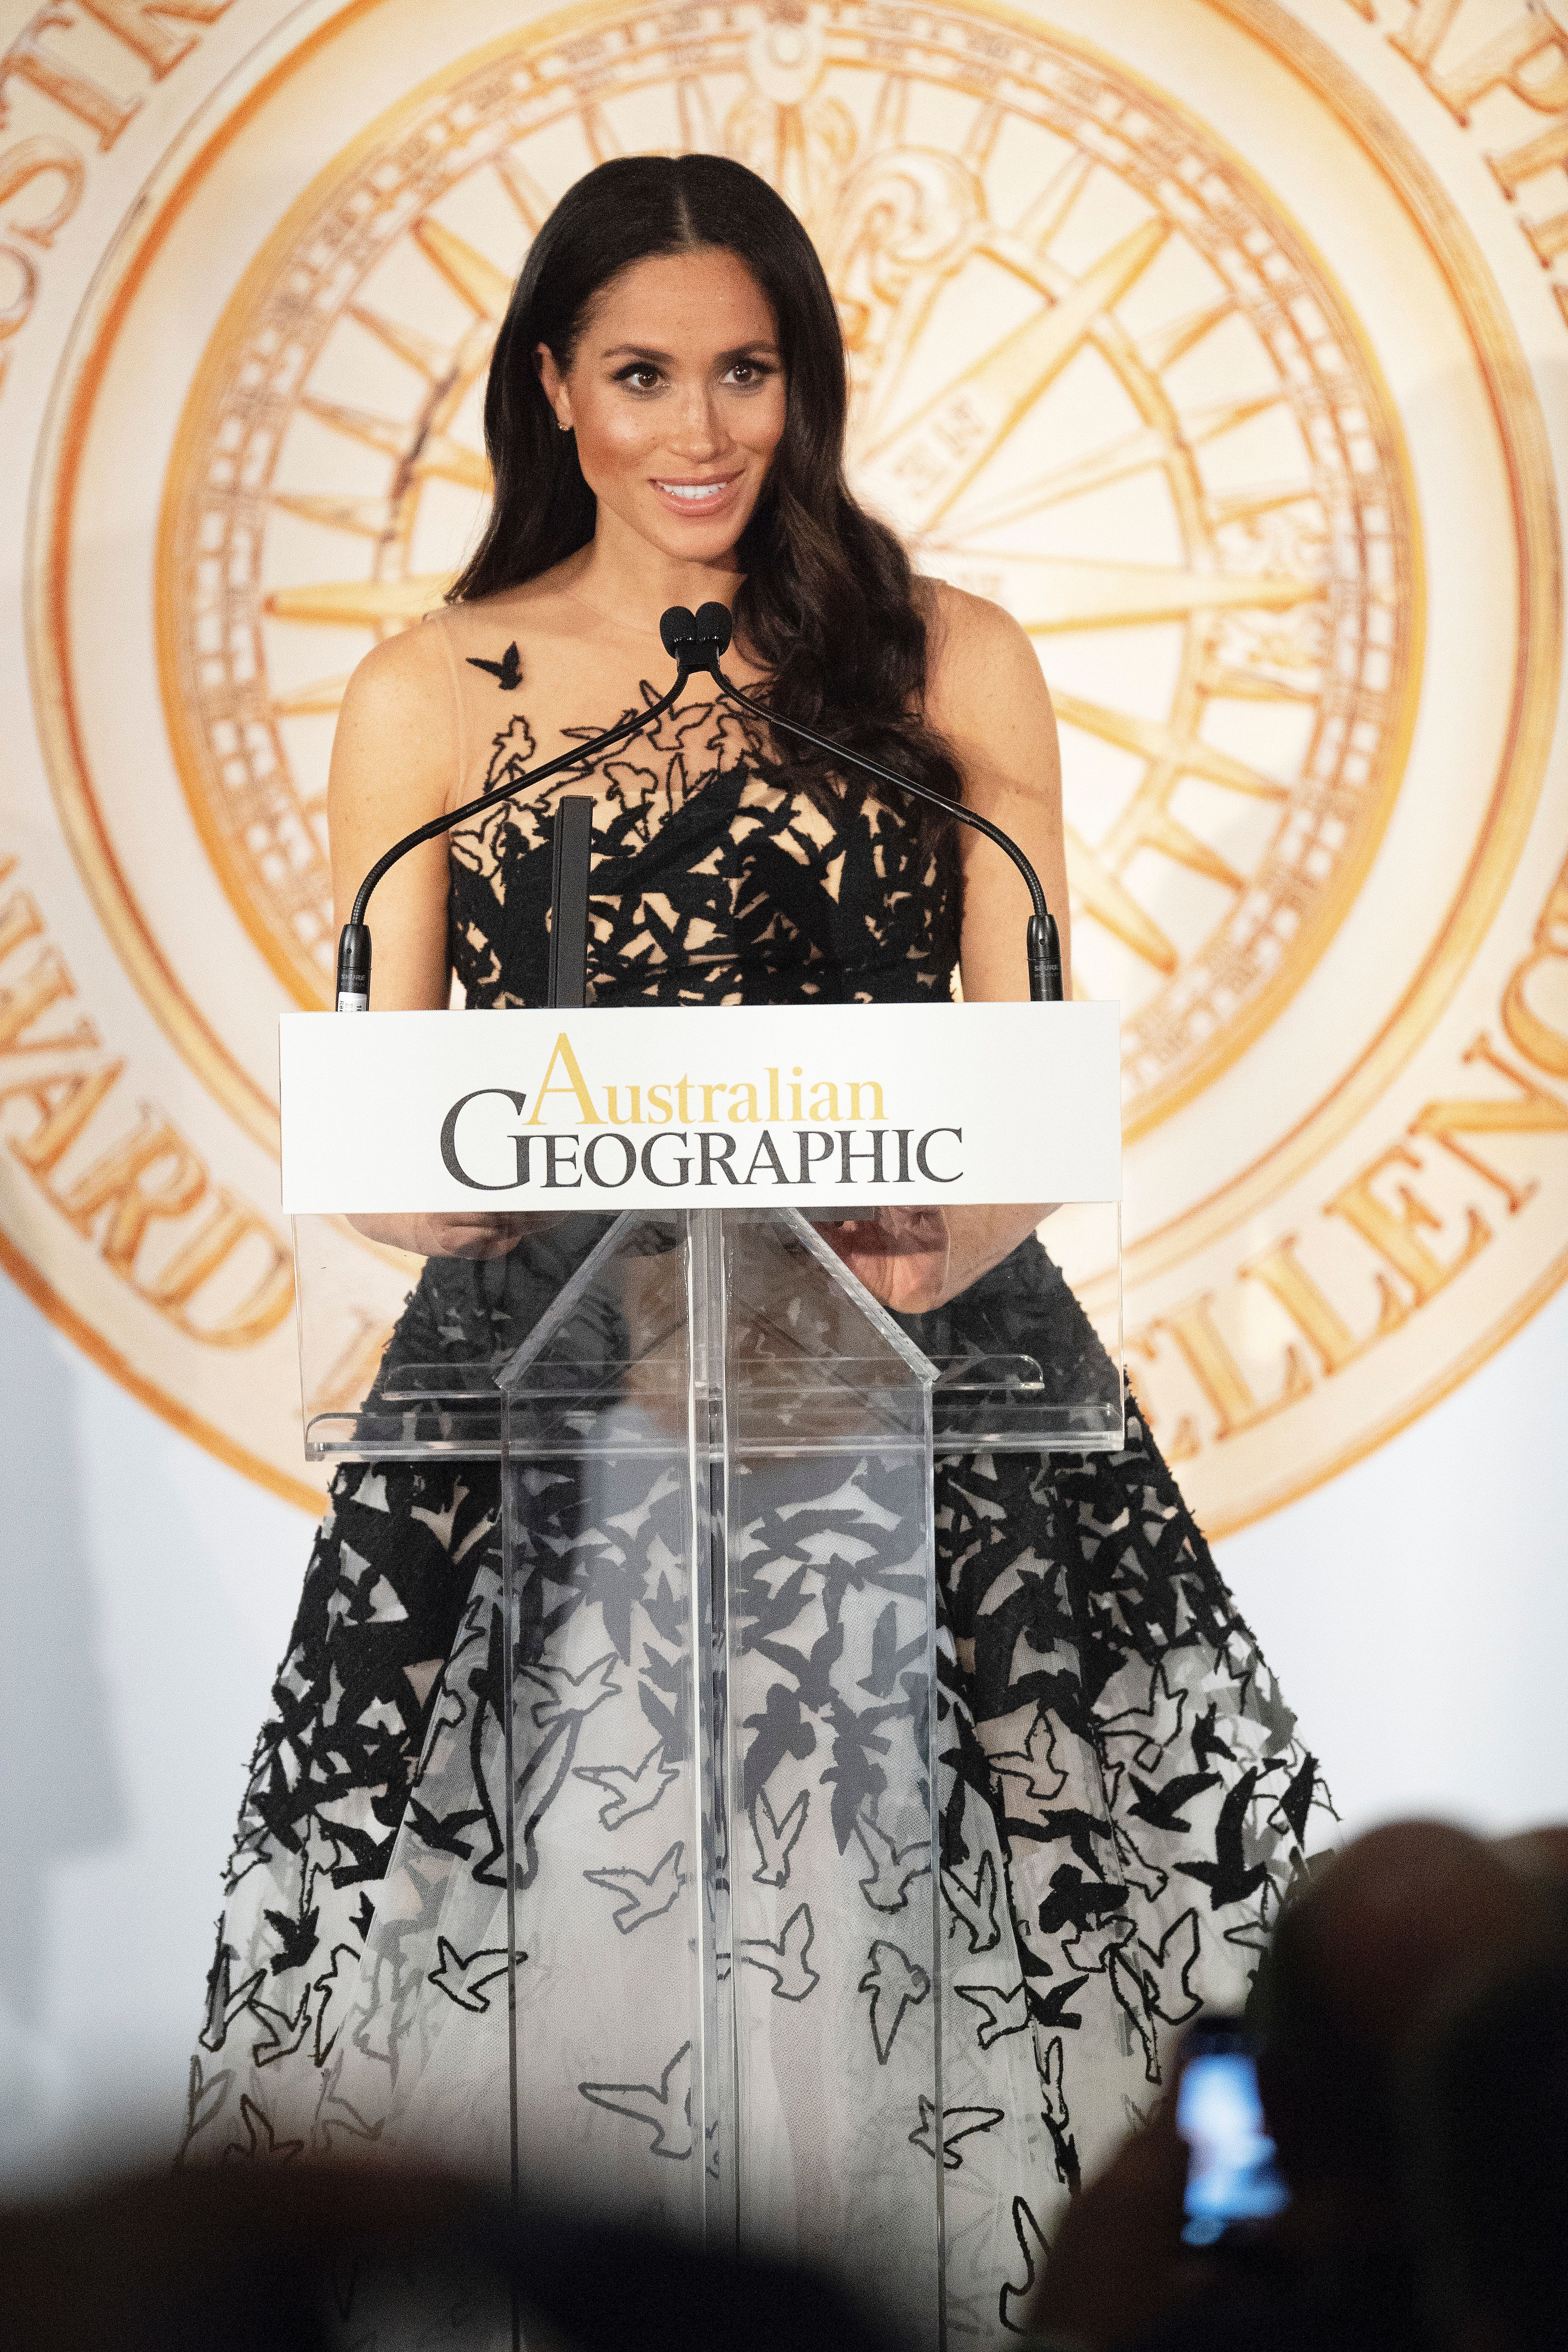 SYDNEY, AUSTRALIA - OCTOBER 26: Meghan, Duchess of Sussex  attends  the Australian Geographic Society Awards to present youth awards to honour the highest achievements in conservation and adventure at the Grand Ballroom, Shangri-La Hotel in Sydney on October 26, 2018.  Prince Harry and his wife Meghan are on day 11 of their 16-day tour of Australia and the South Pacific. (Photo by Paul Edwards - Pool/Getty Images)